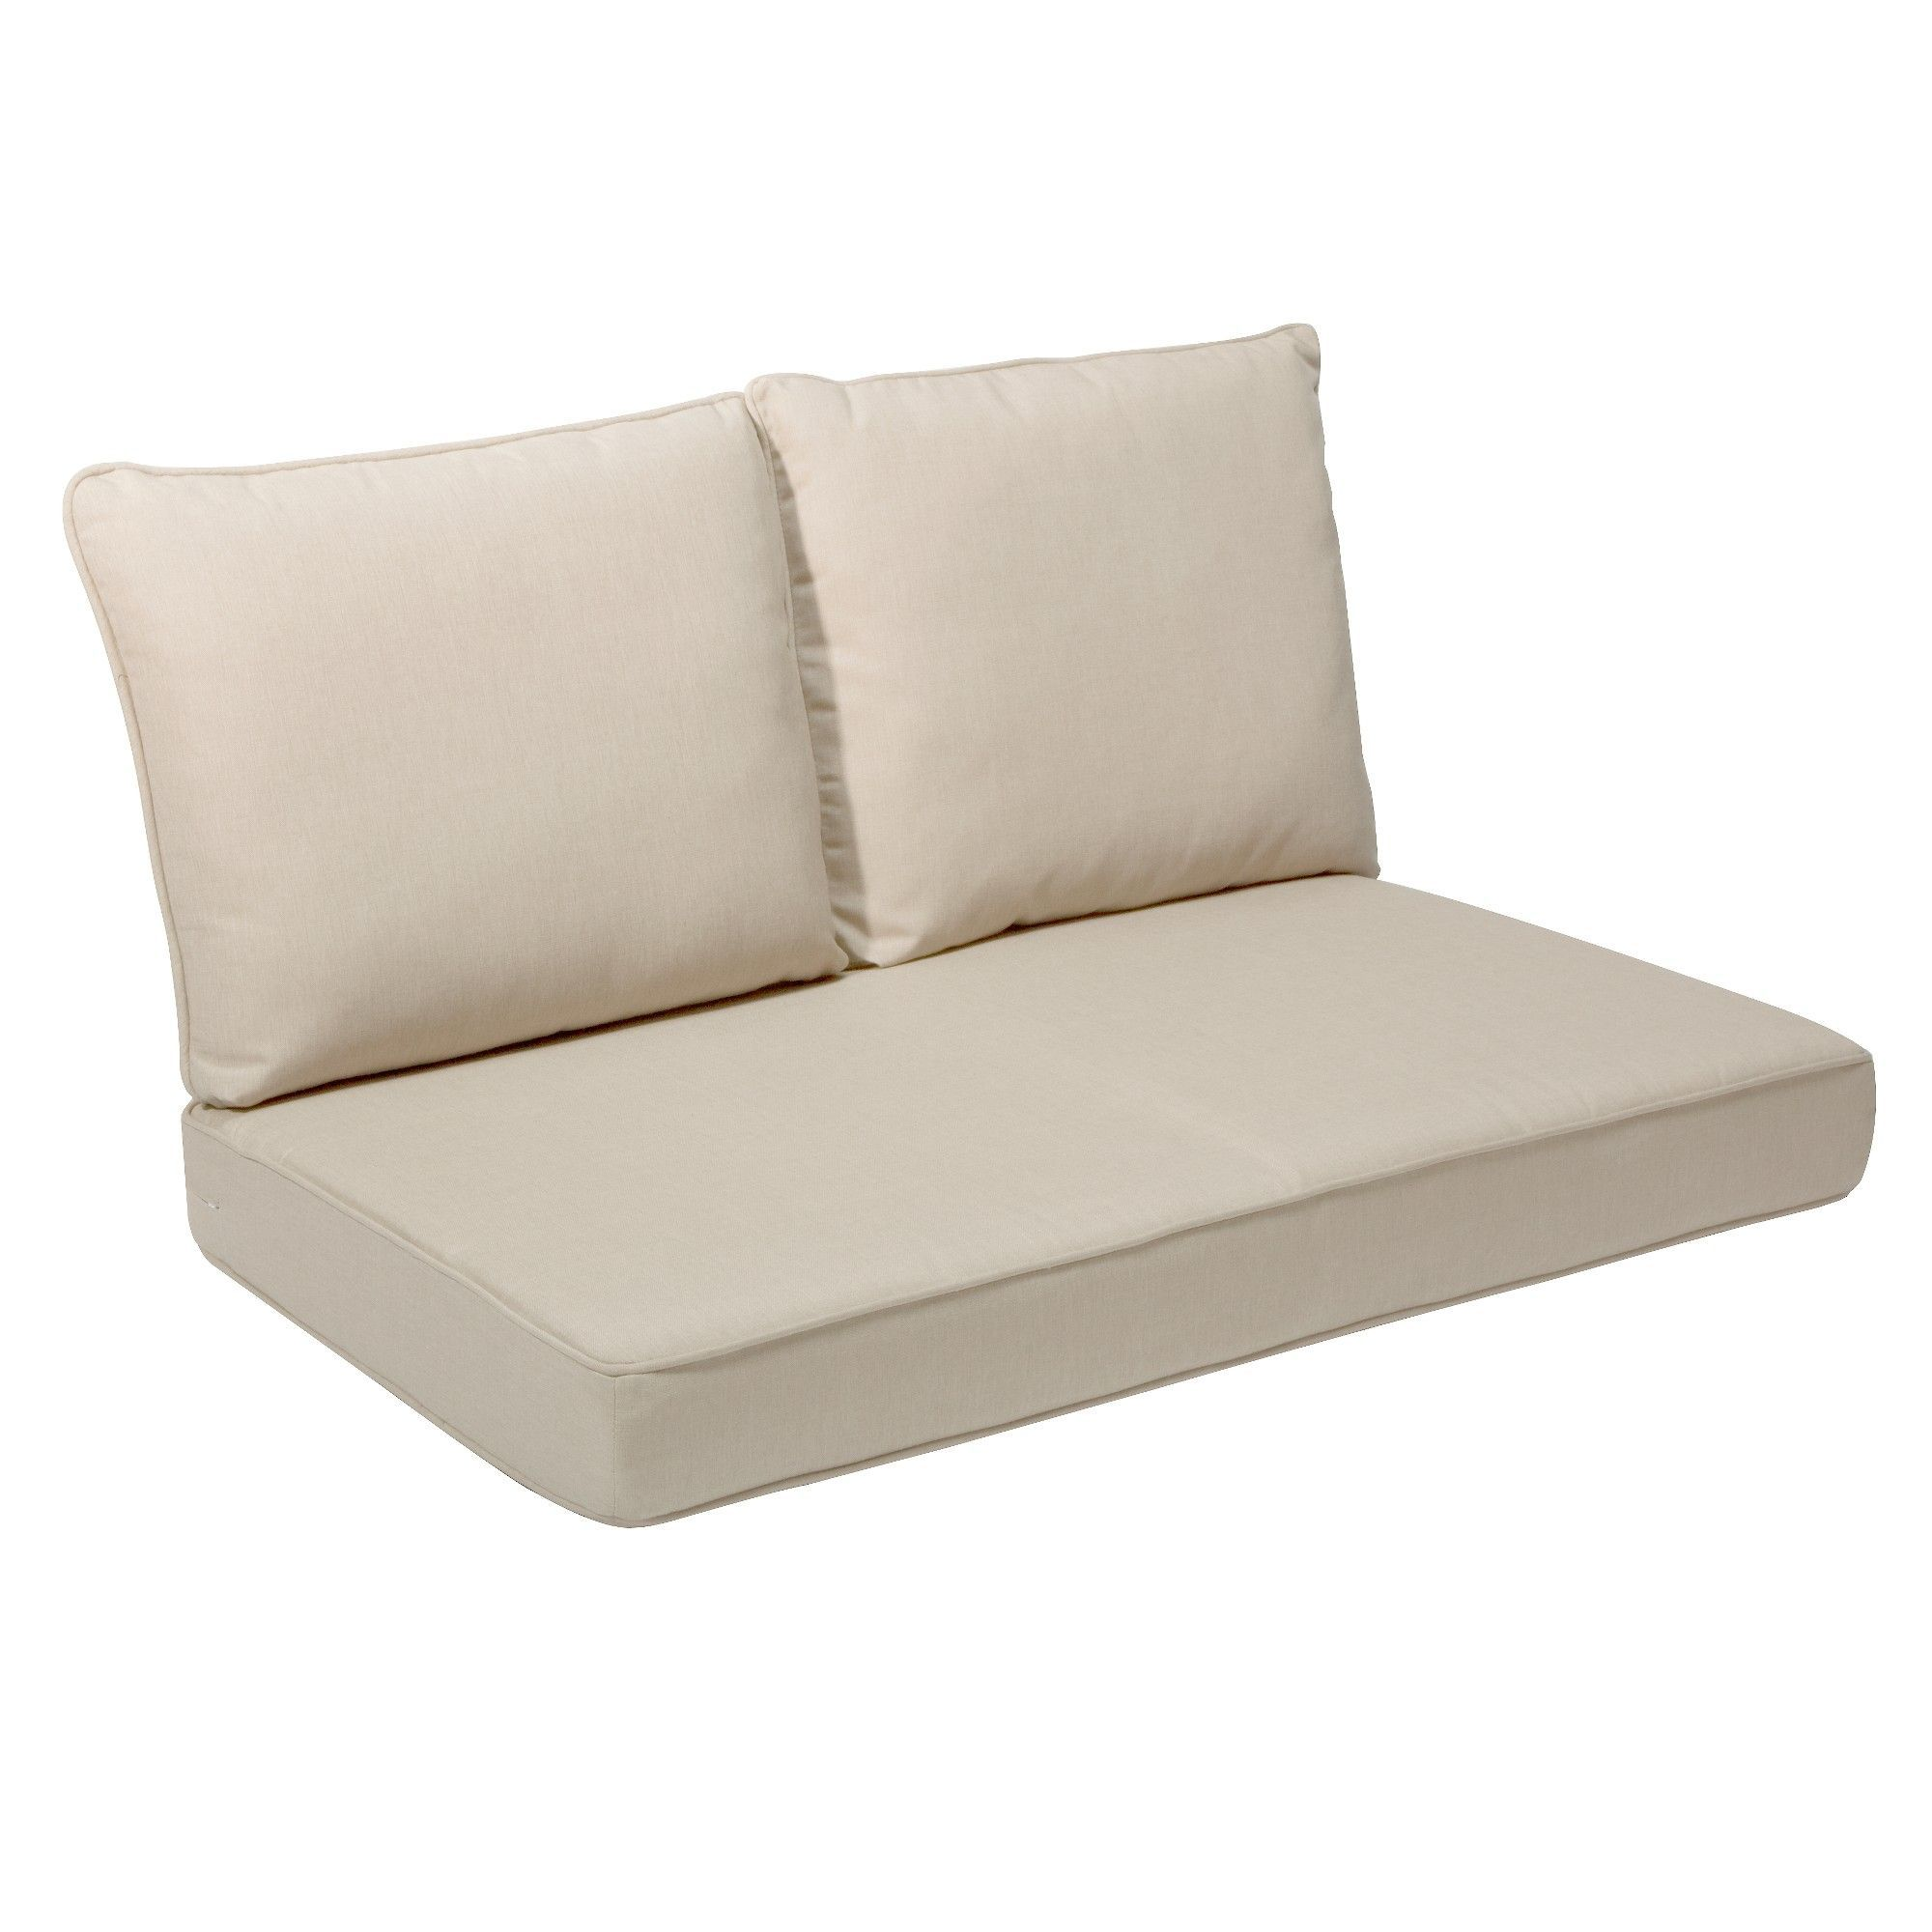 Rolston 3pc Outdoor Replacement Loveaseat Cushion Set Beige